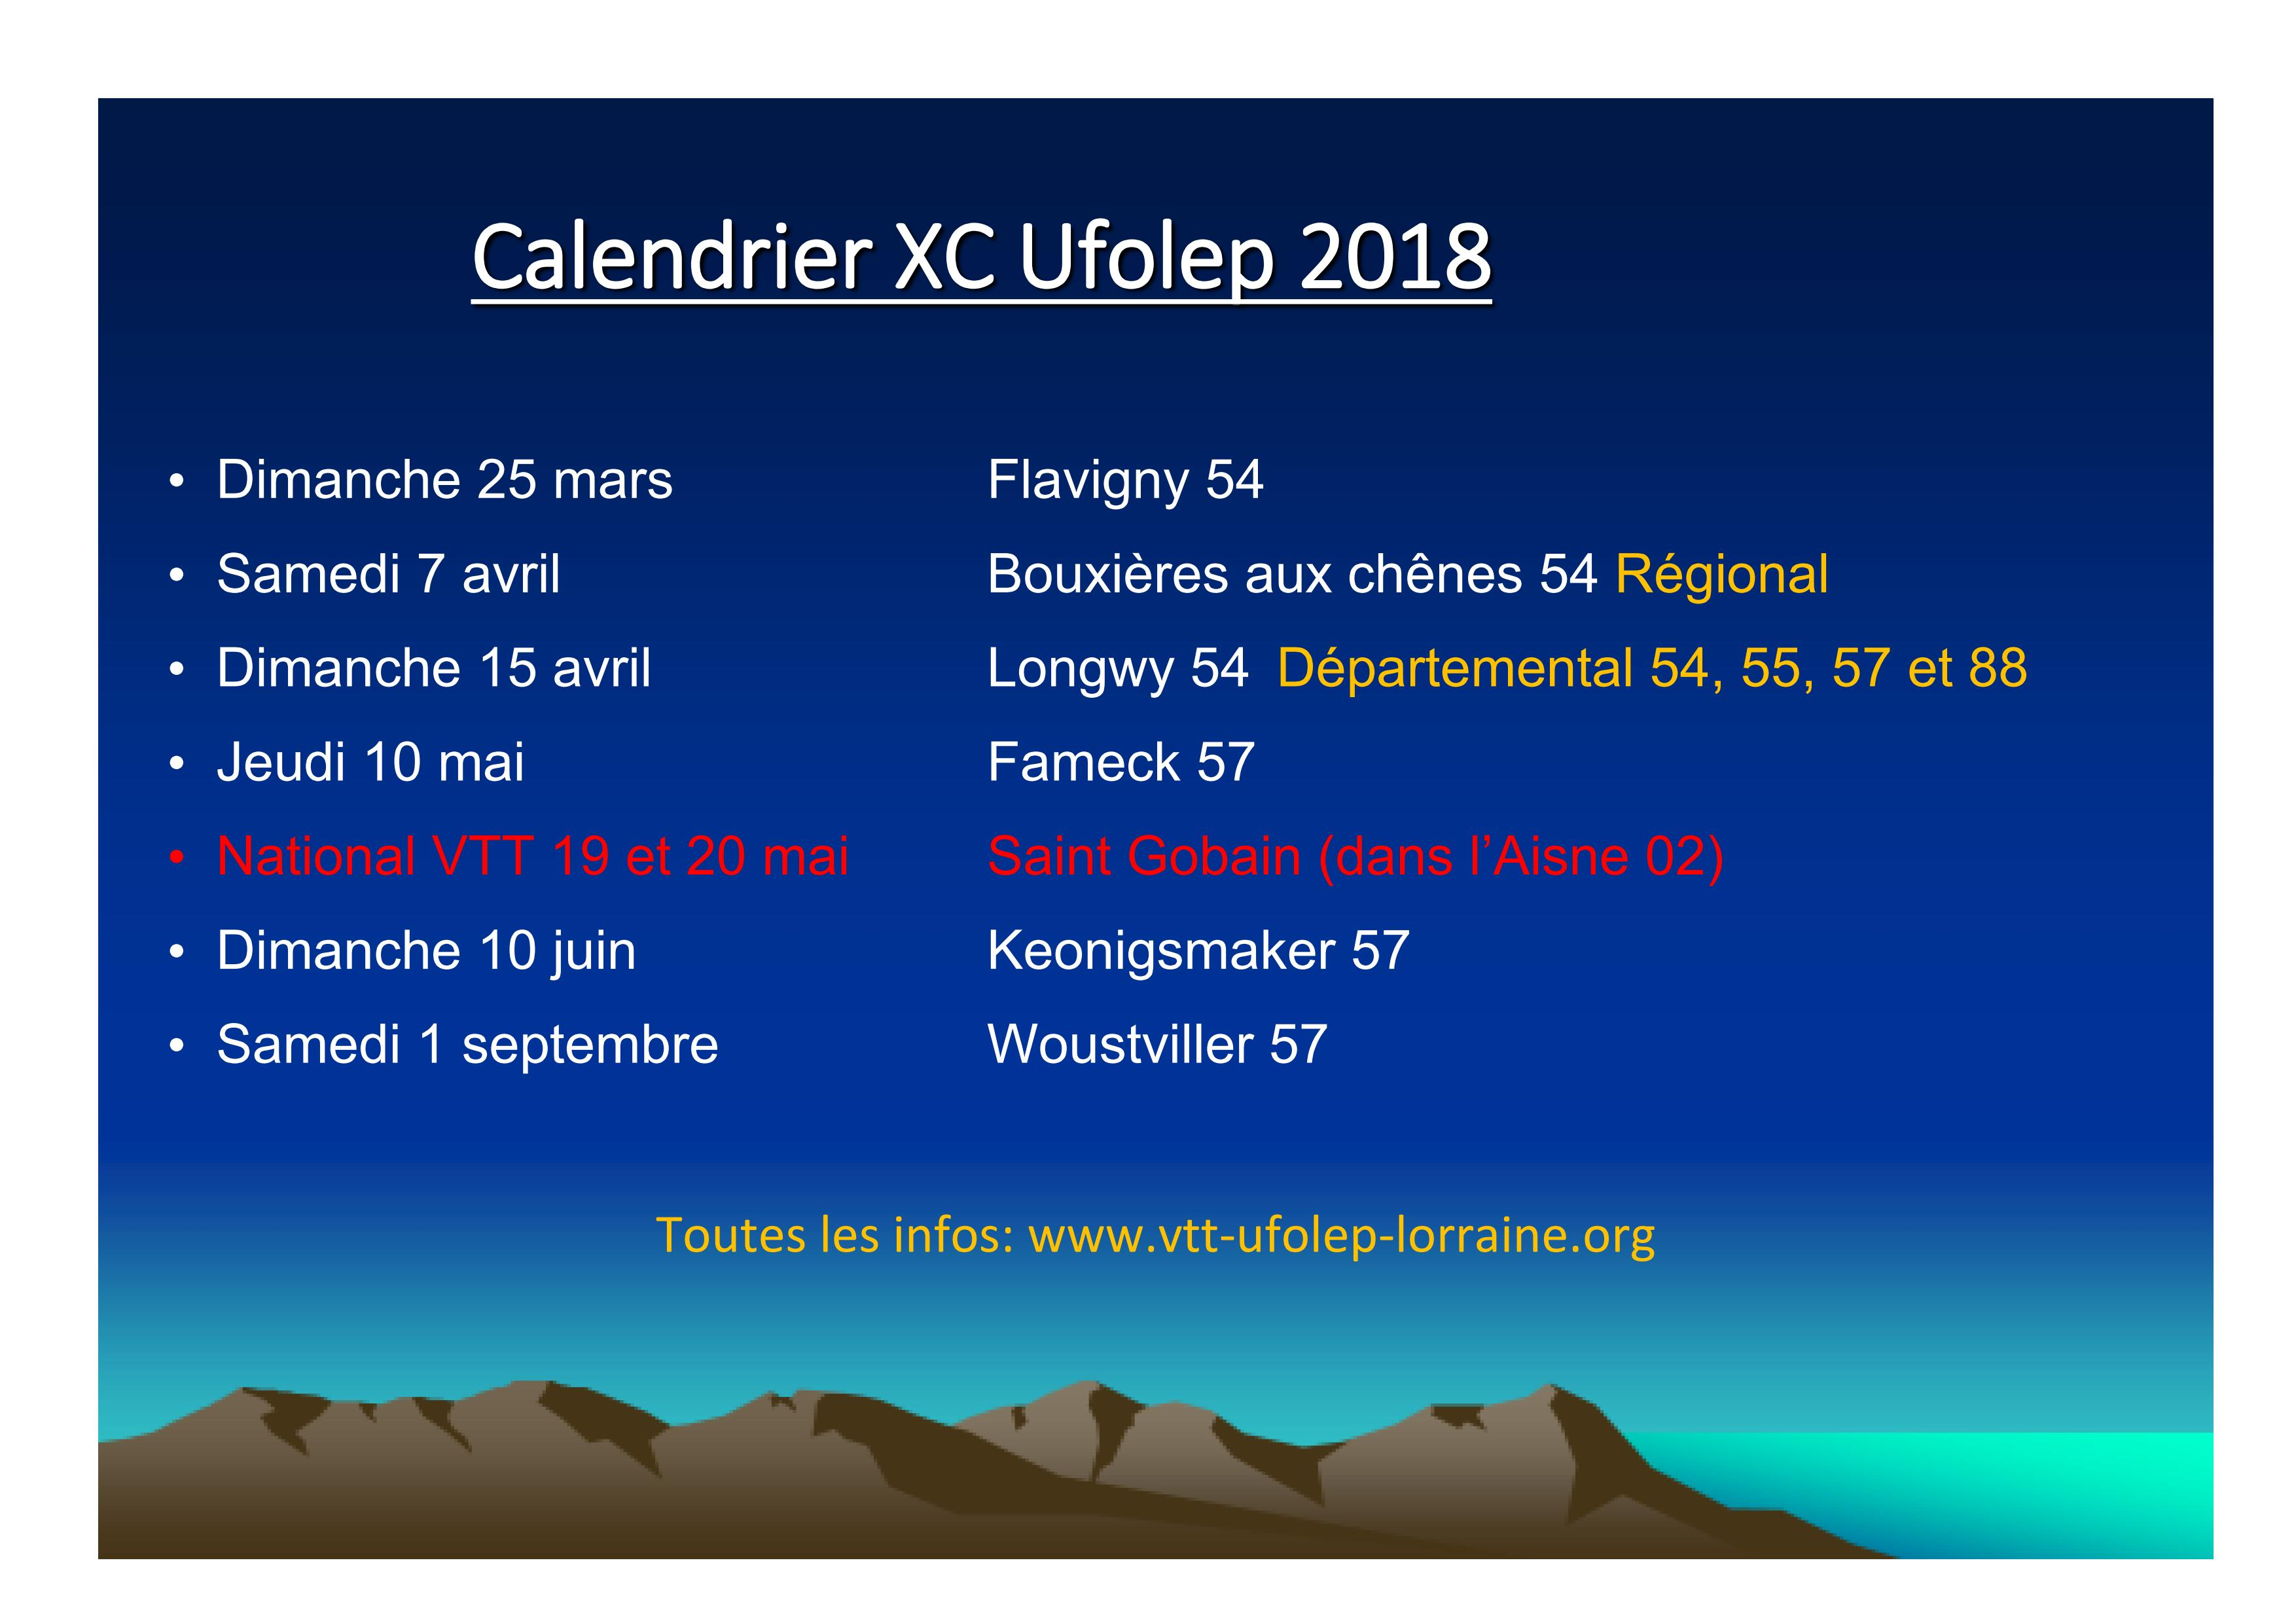 Calendrier Ufolep_2018_1_01